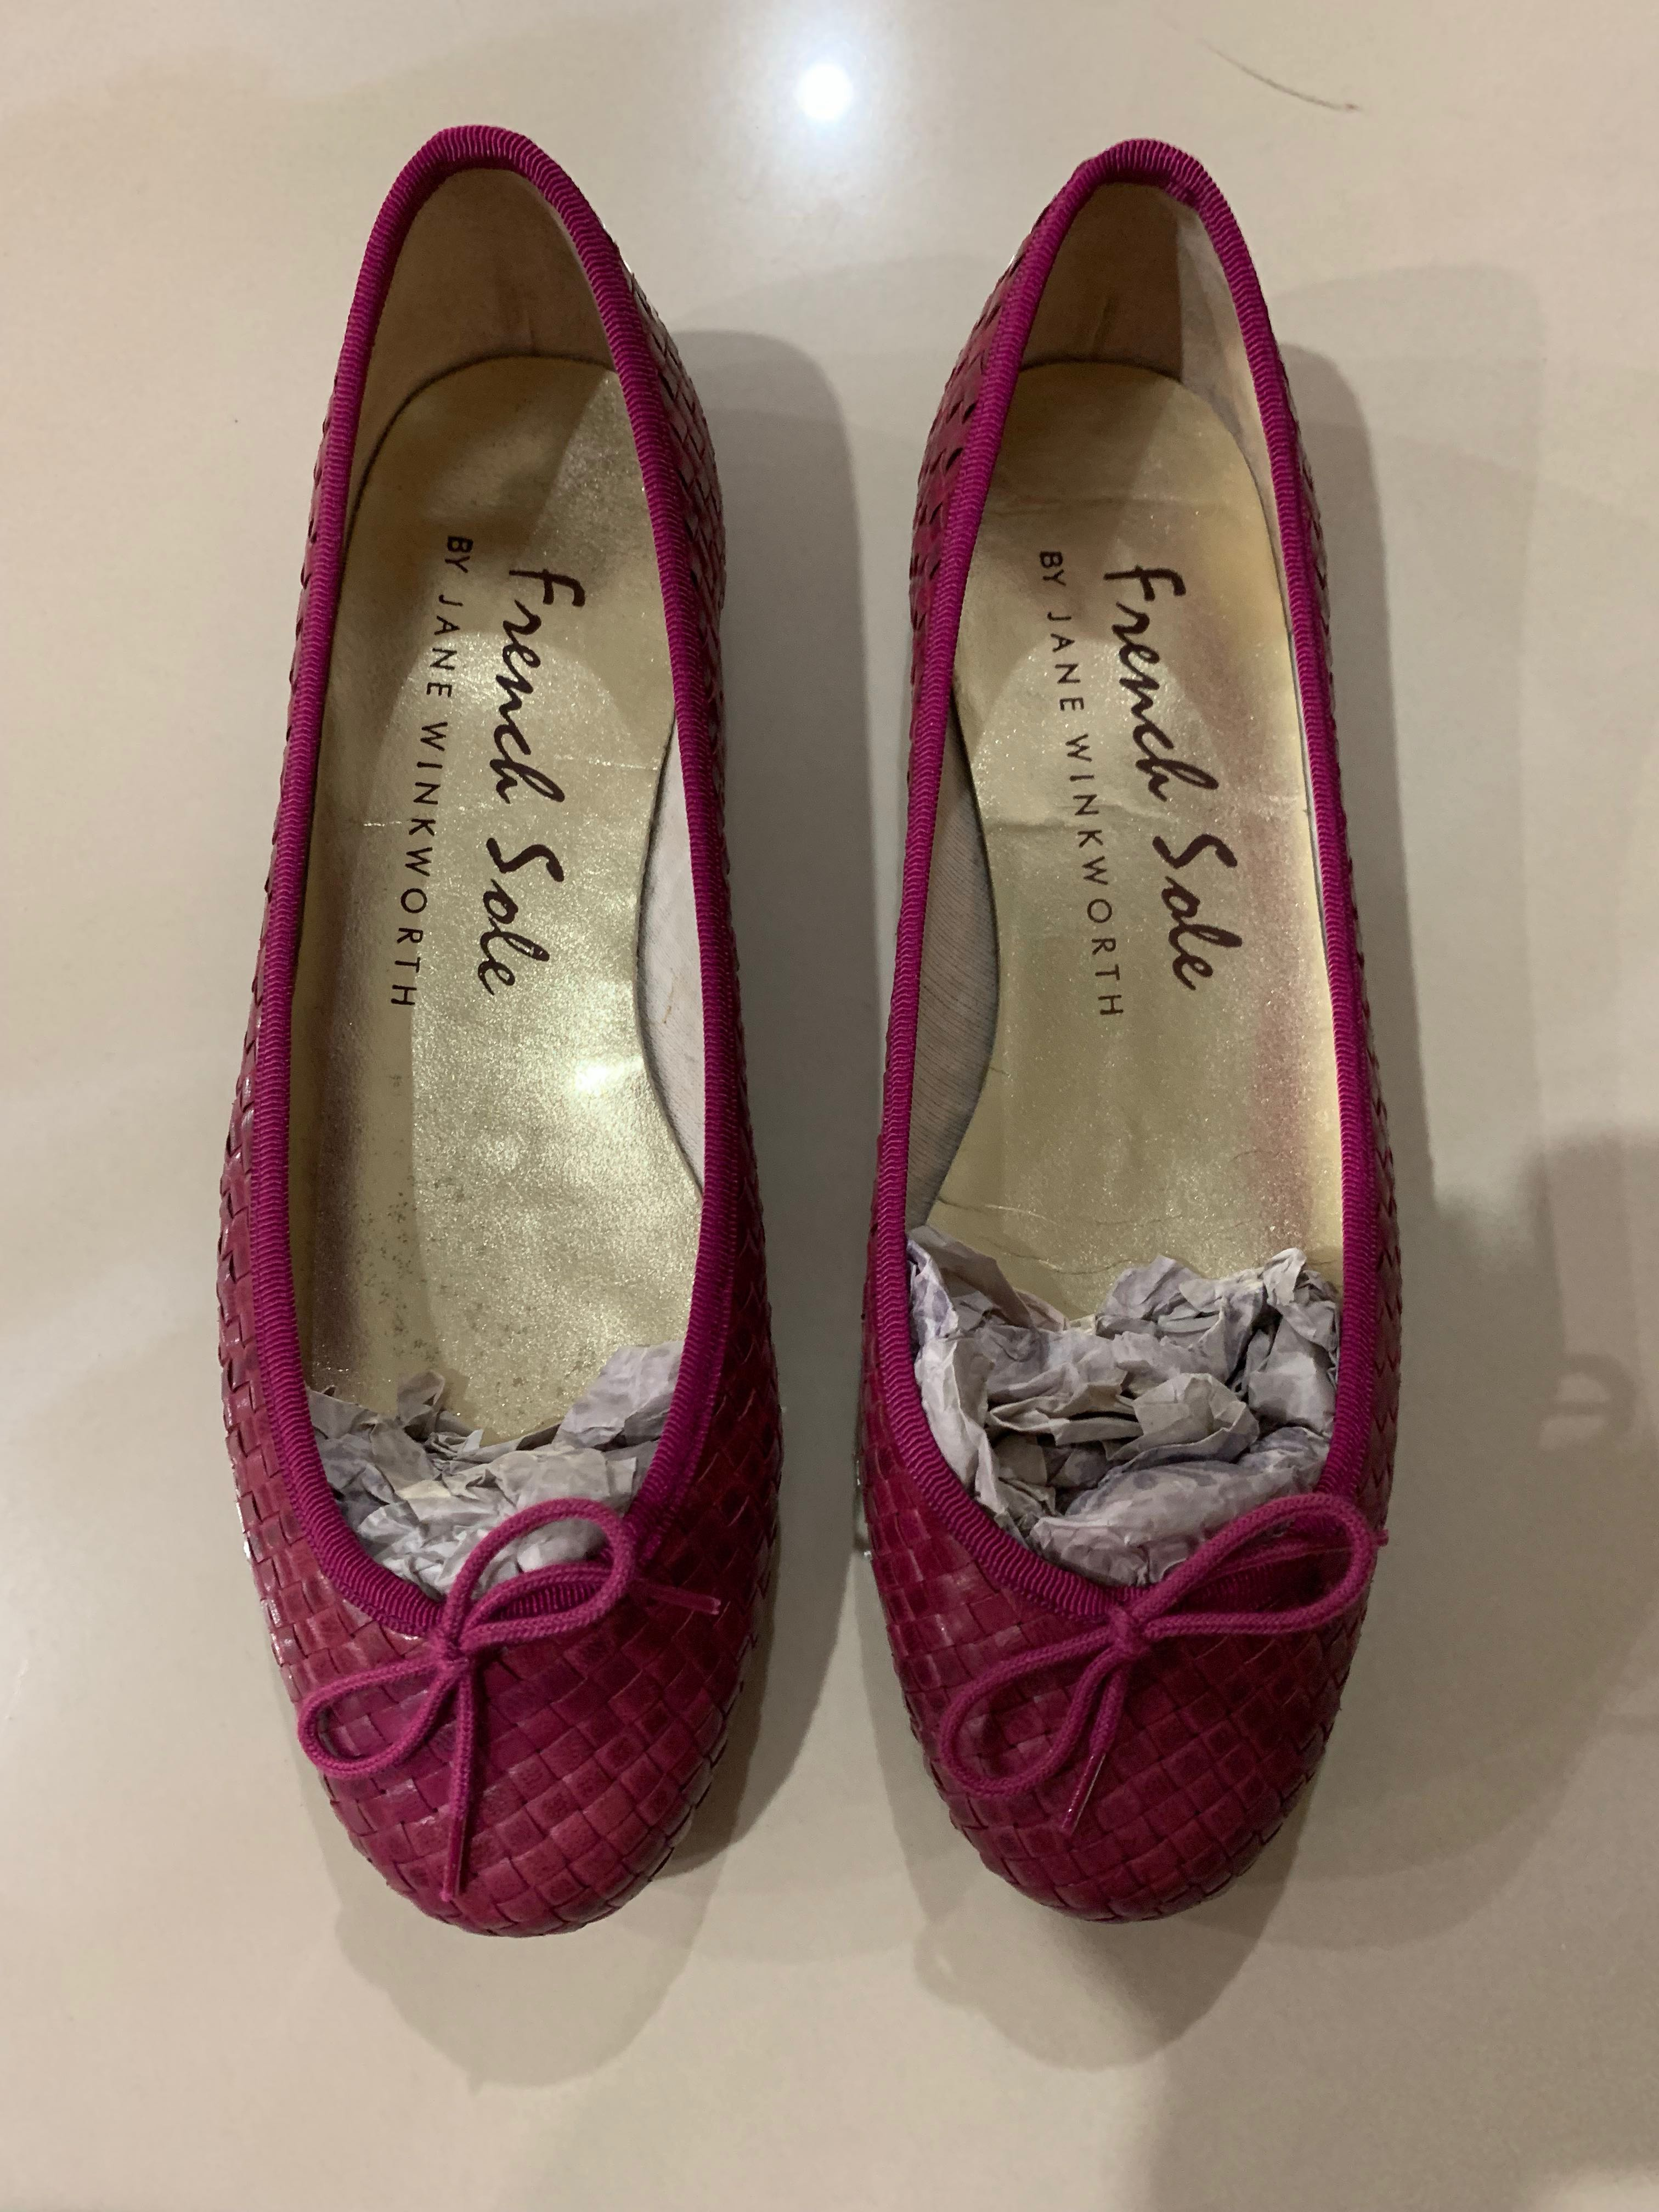 French Sole Ballerina Flats (Size 38)